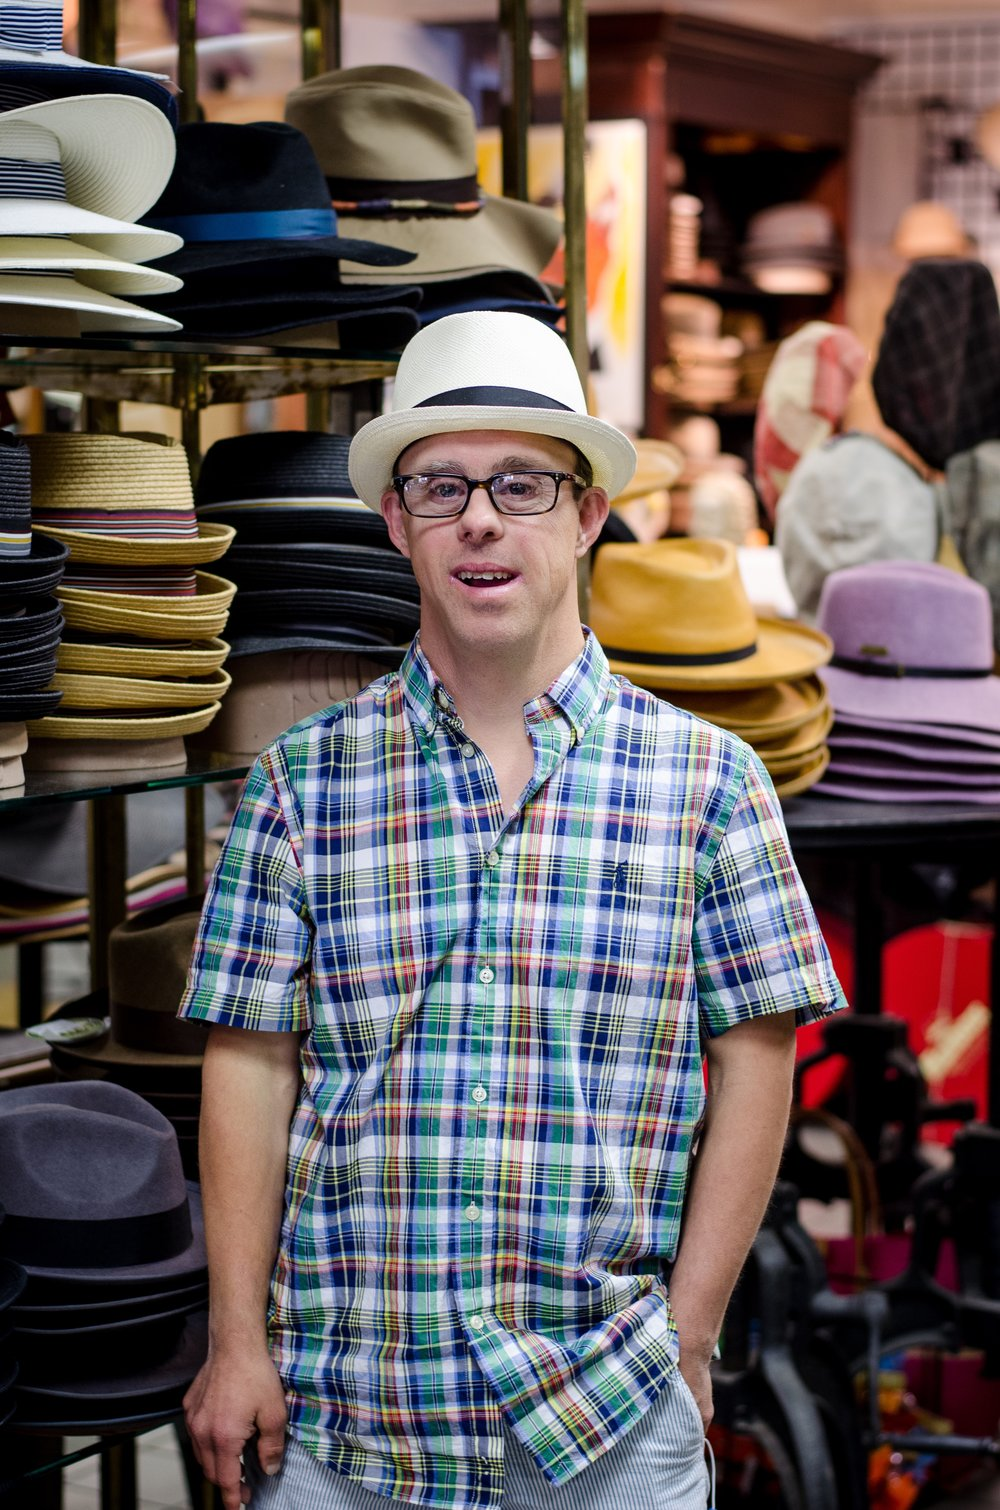 Art Show at the Hatbox May 20 from 7-9pm - Our friends at Austin's famous Hatbox downtown is showcasing Brandon's art again! Come join us for classic hats, music and reception, along with many of Brandon's new pieces.